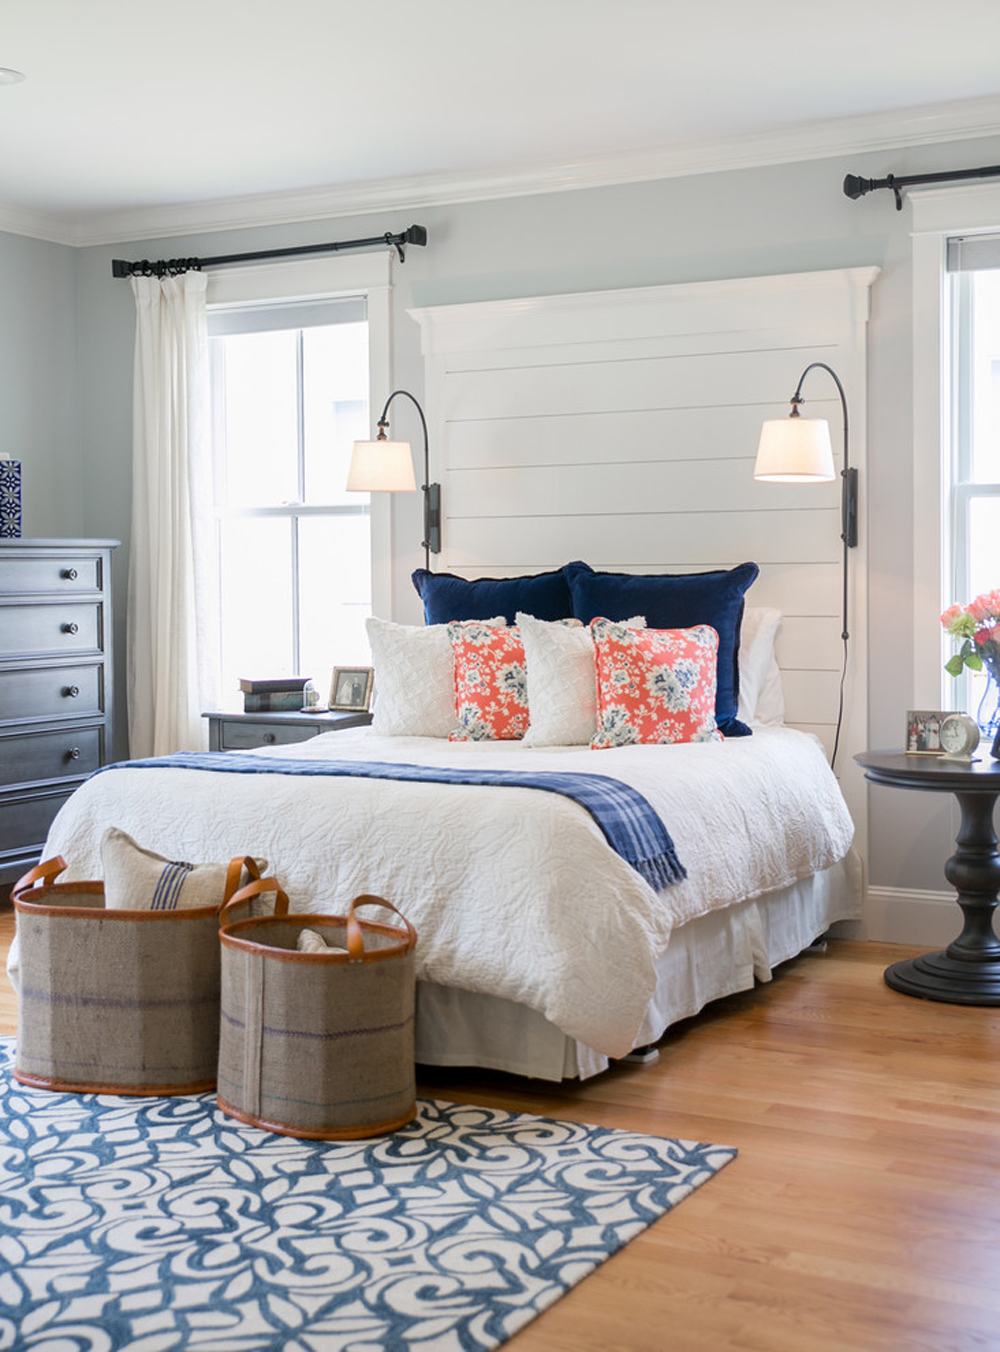 Beach bedroom ideas that look good on a seaside home